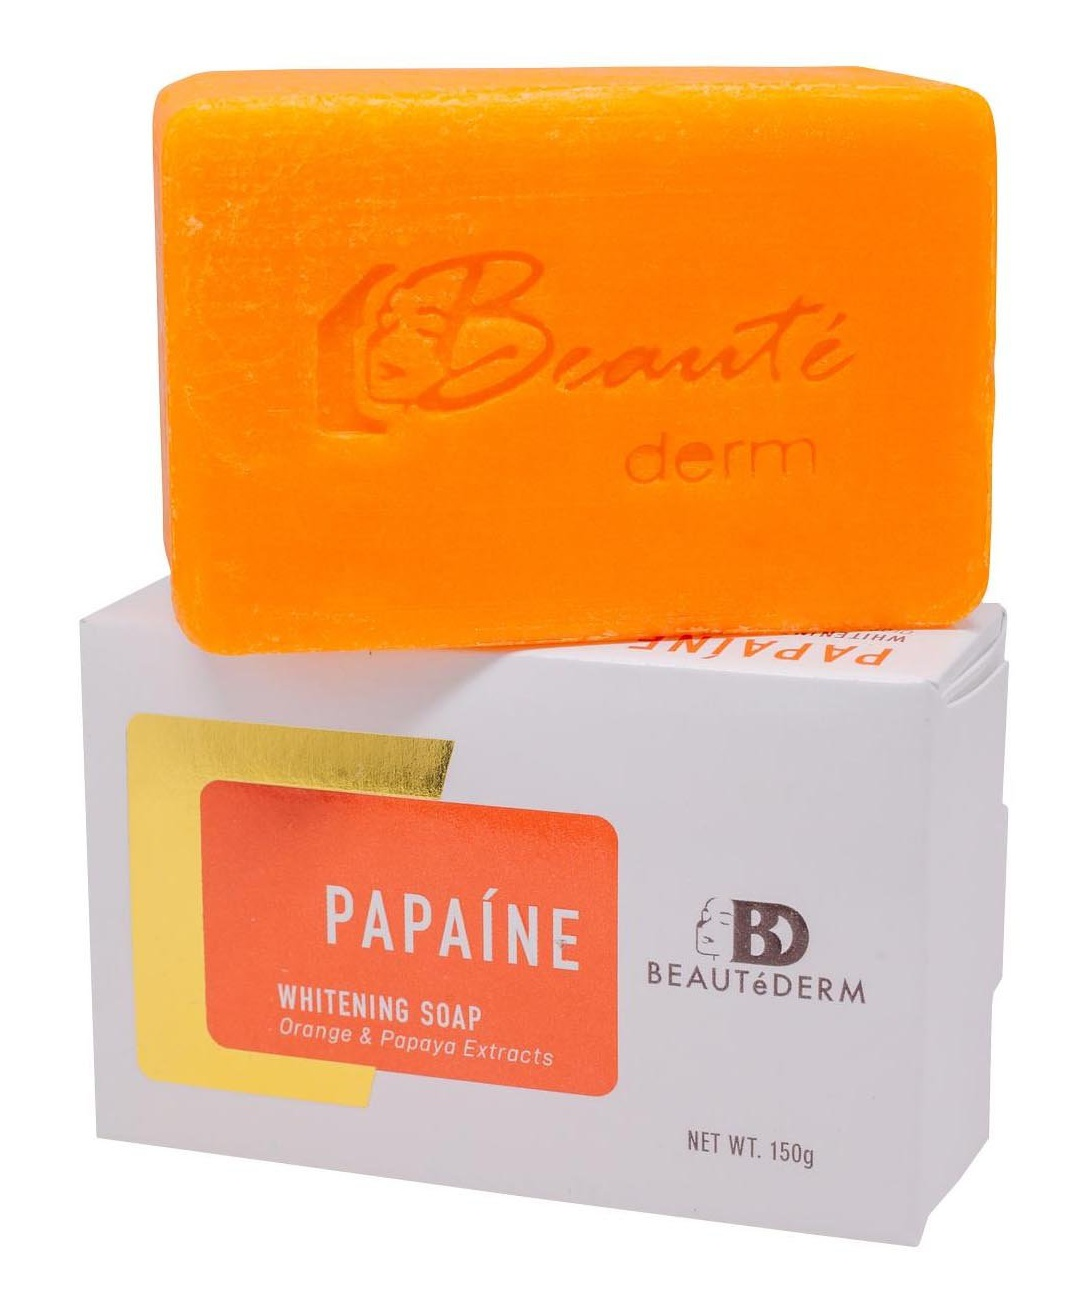 Beautederm Papaine Whitening Soap